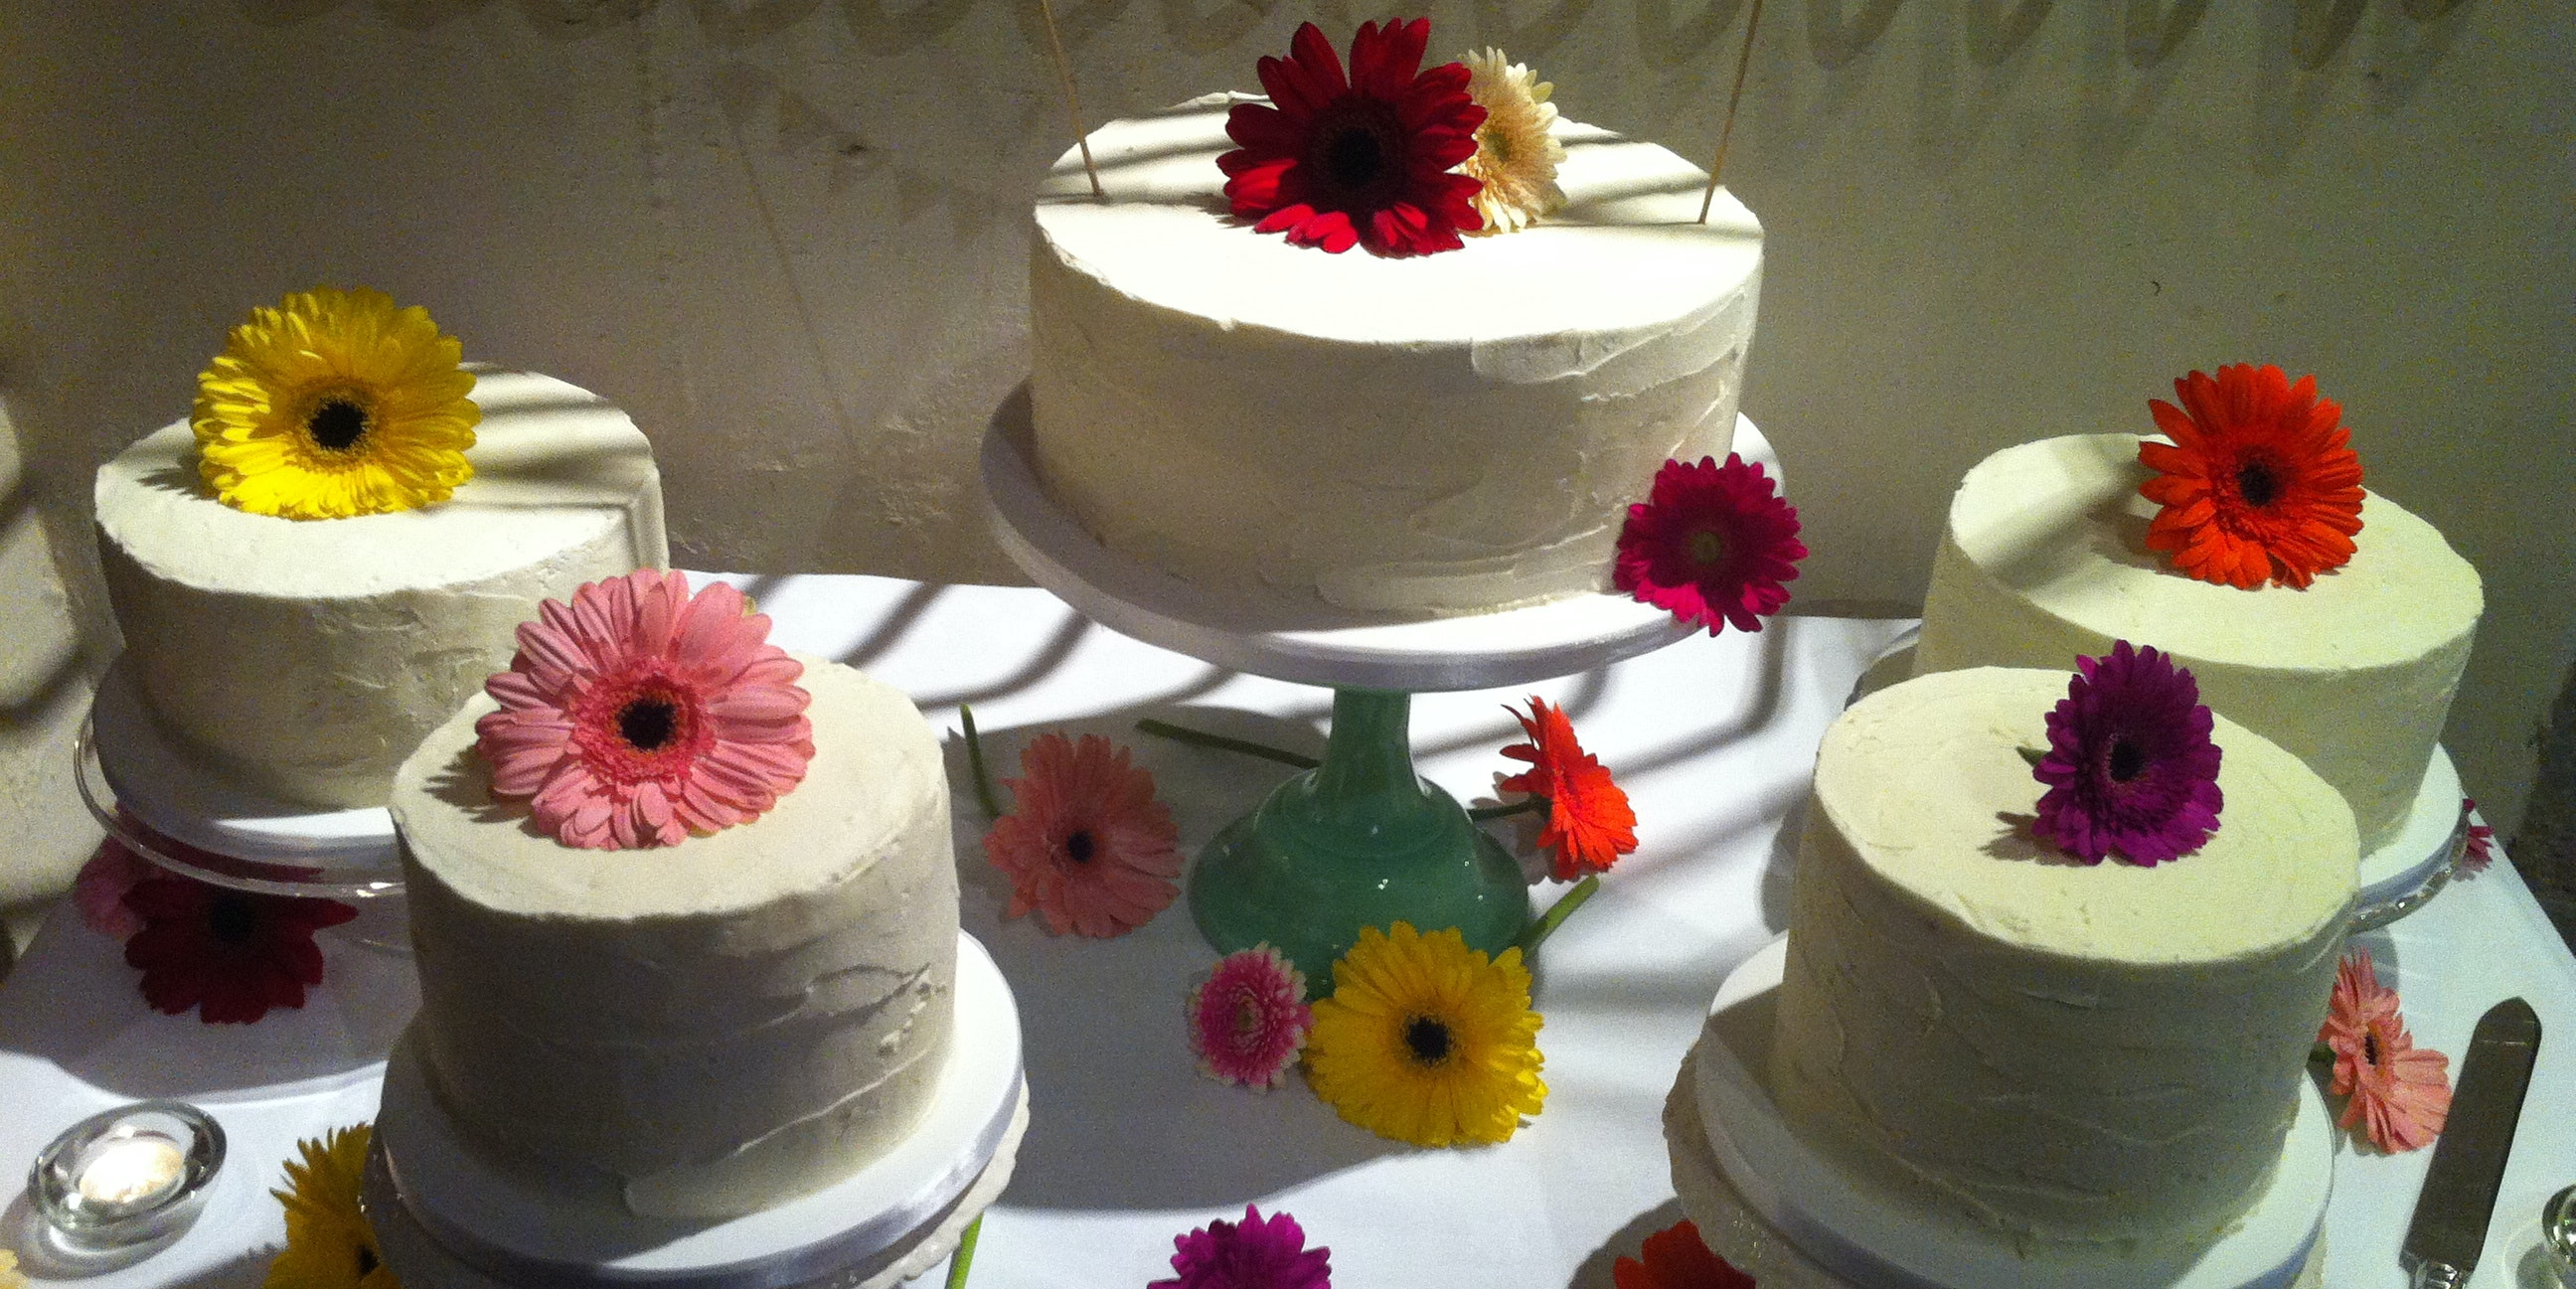 Experts Agree That Eating Frozen Wedding Cake Is Safe -- But Not Risk-Free